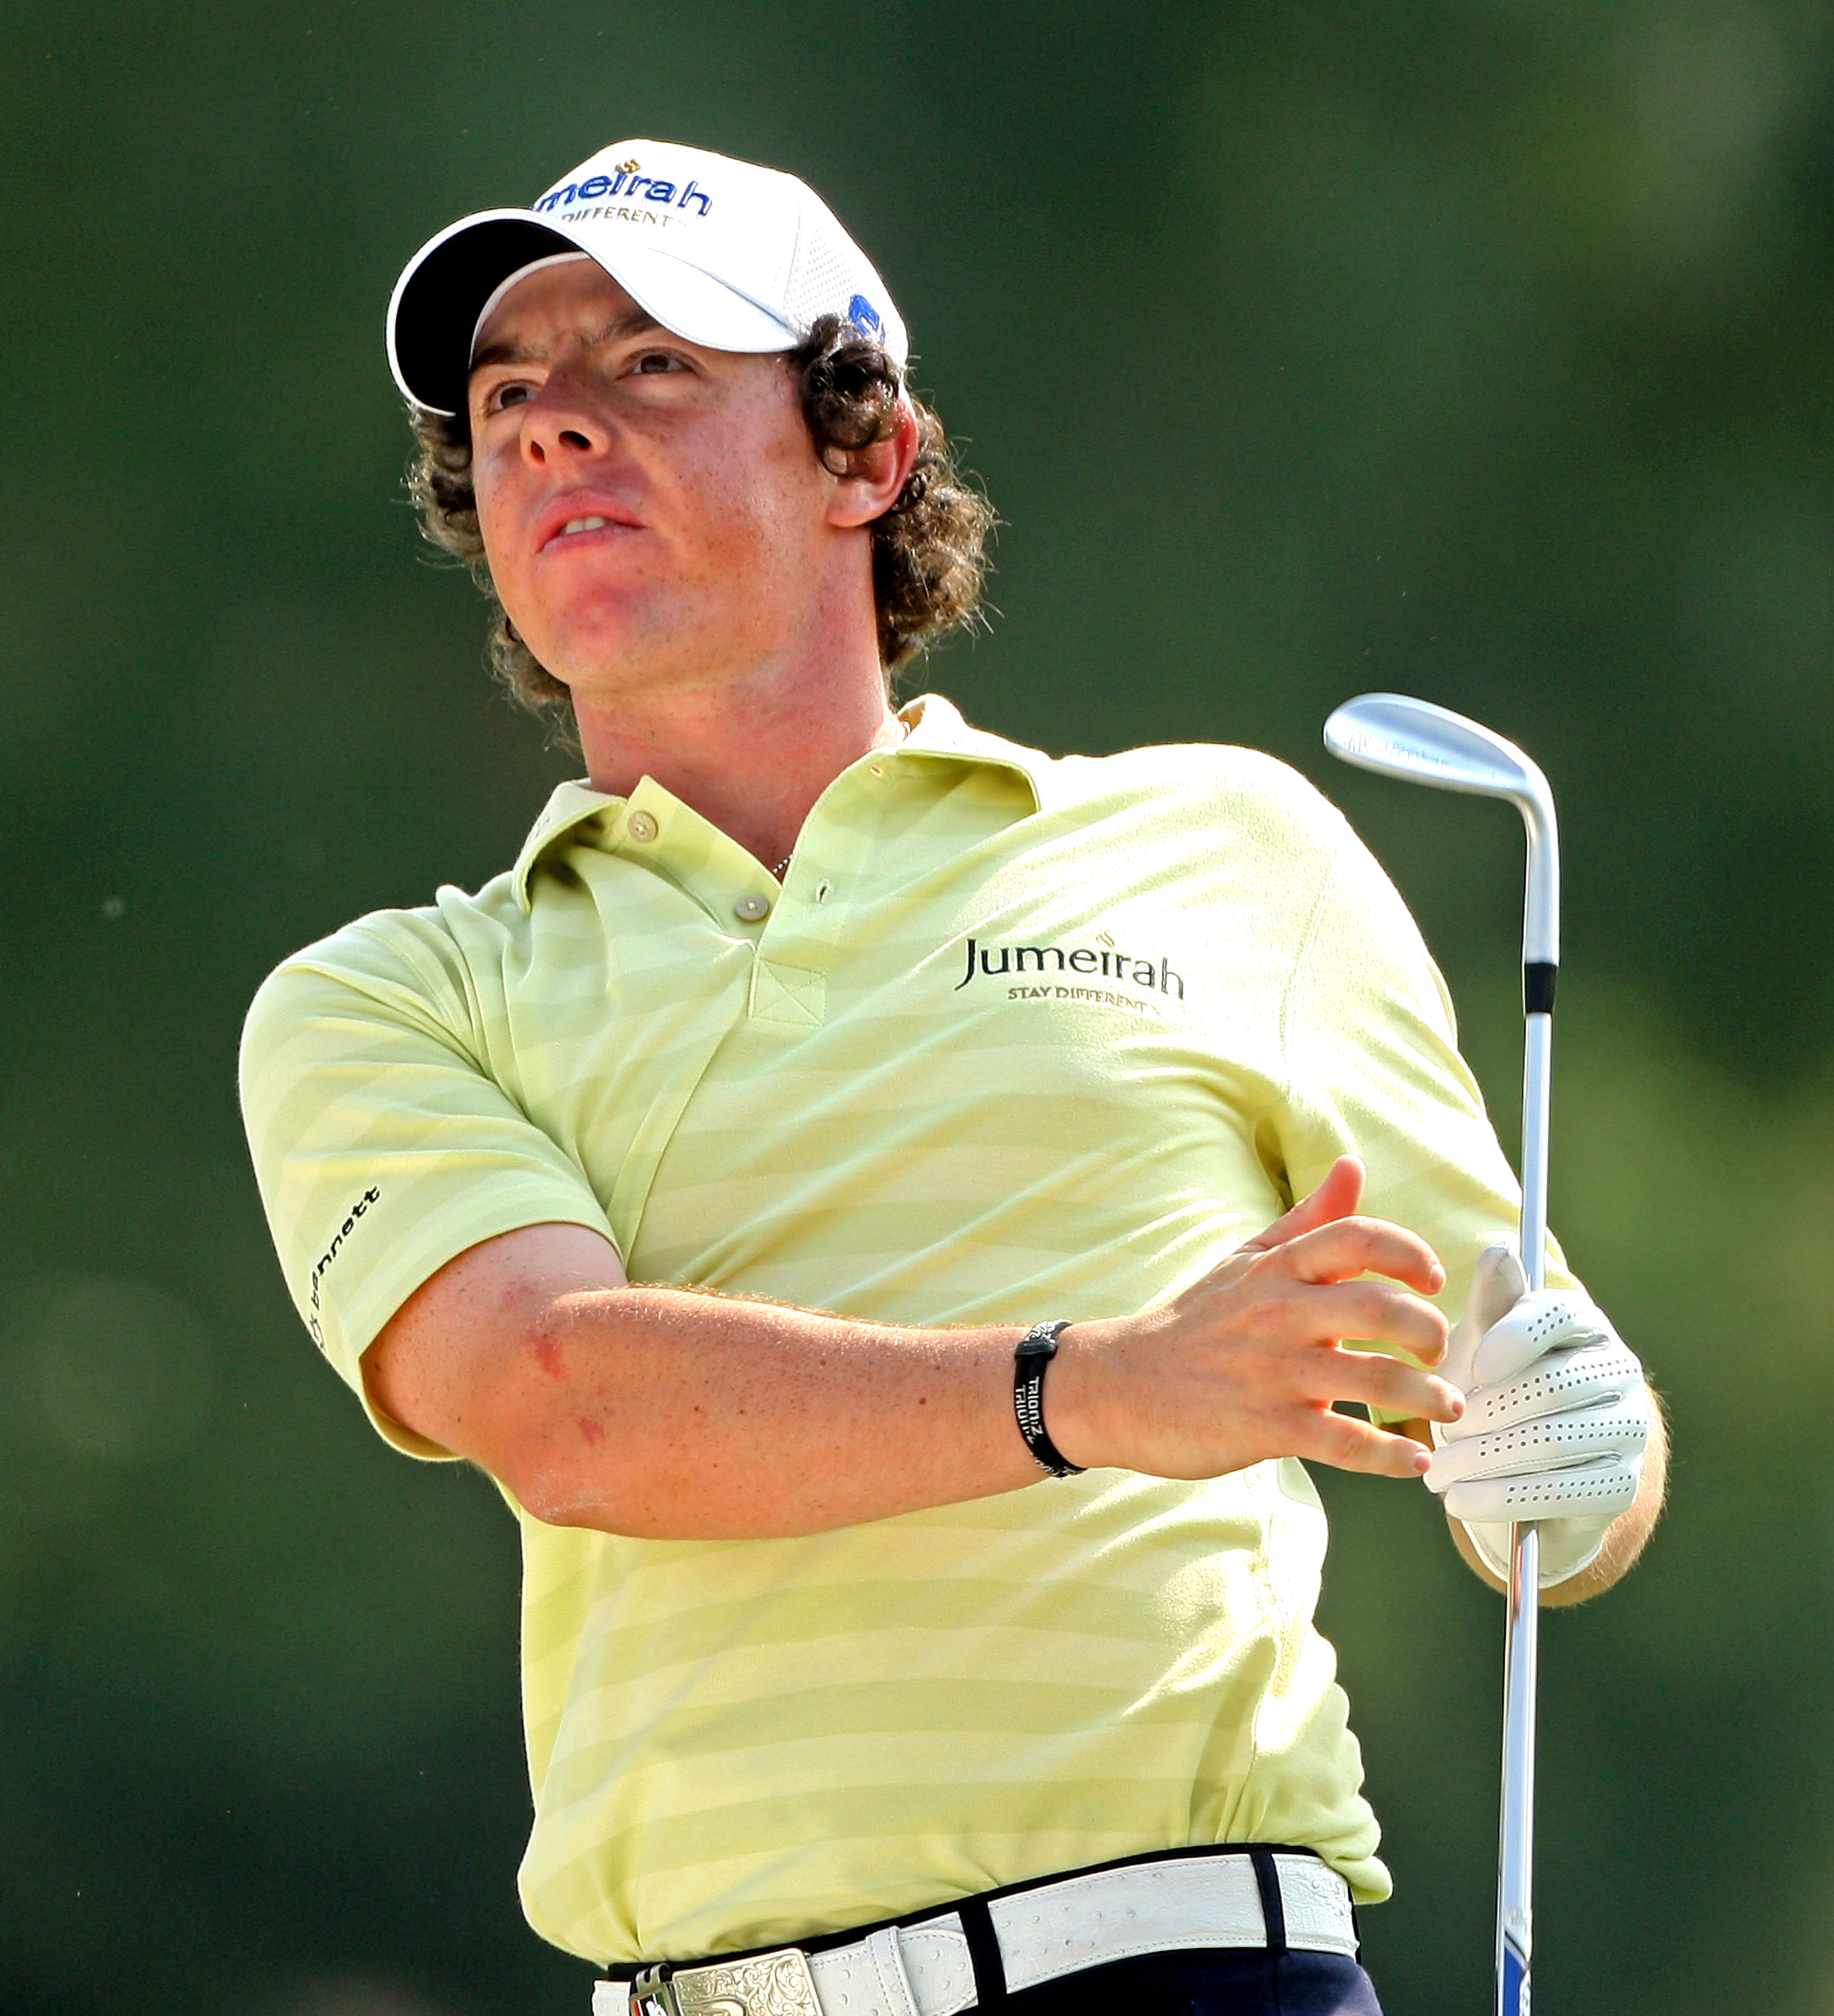 Rory McIlroy is in position to win the Race to Dubai, which features a $7.5 million bonus pool.